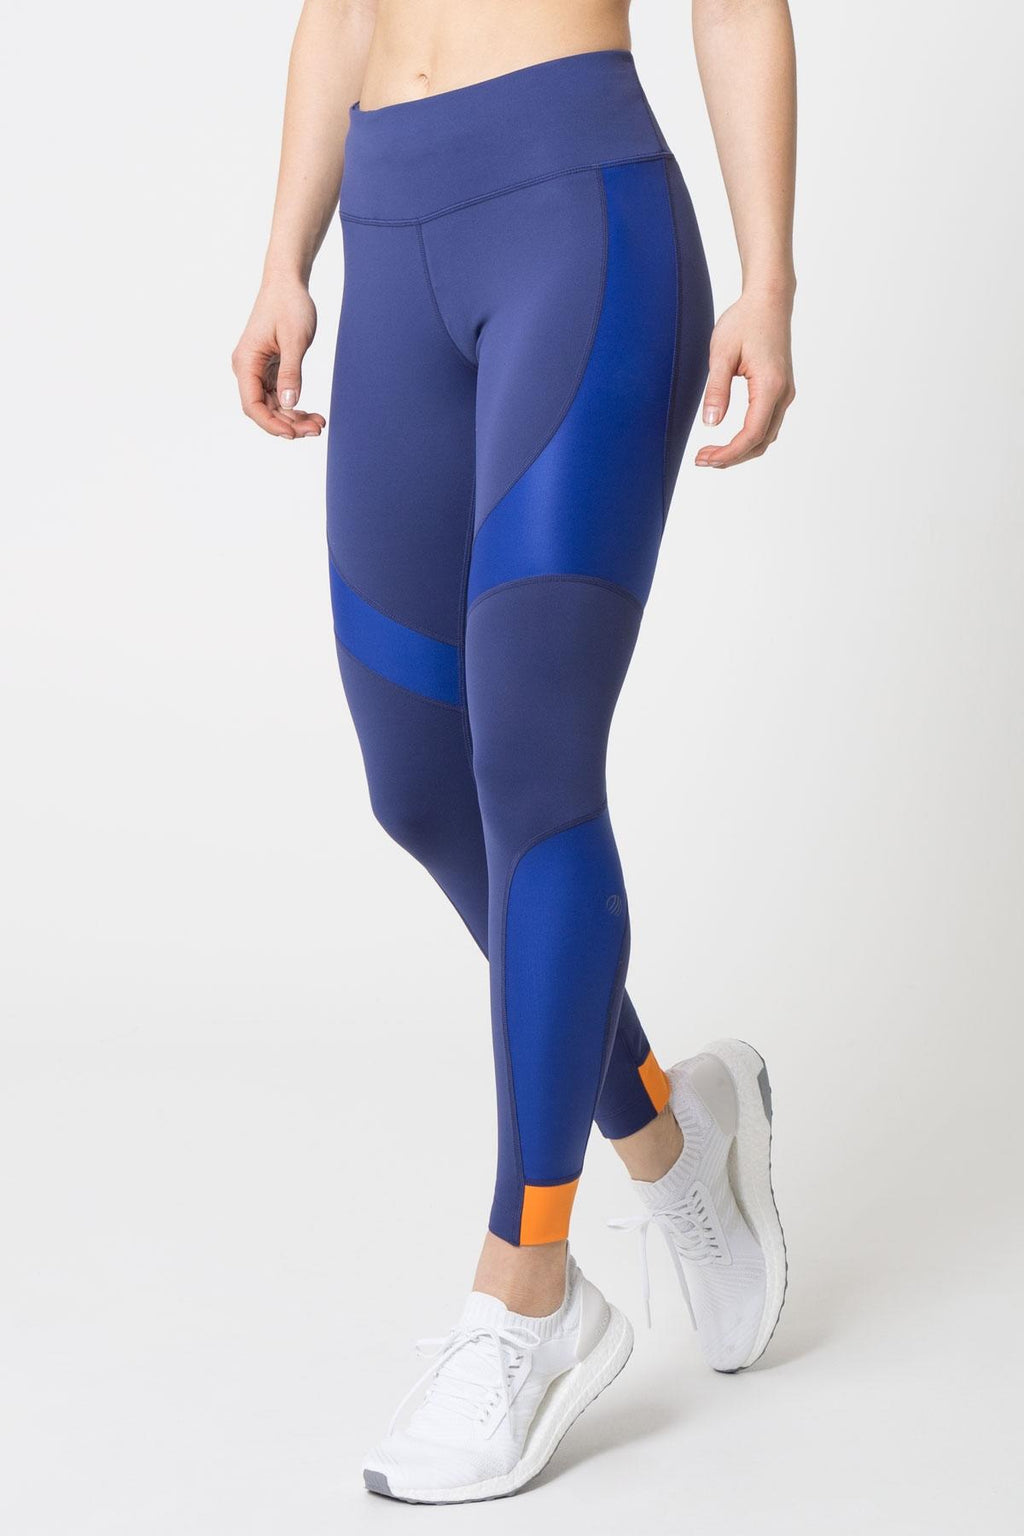 Runaway Color Block Metallic Panel Leggings - Blueberry